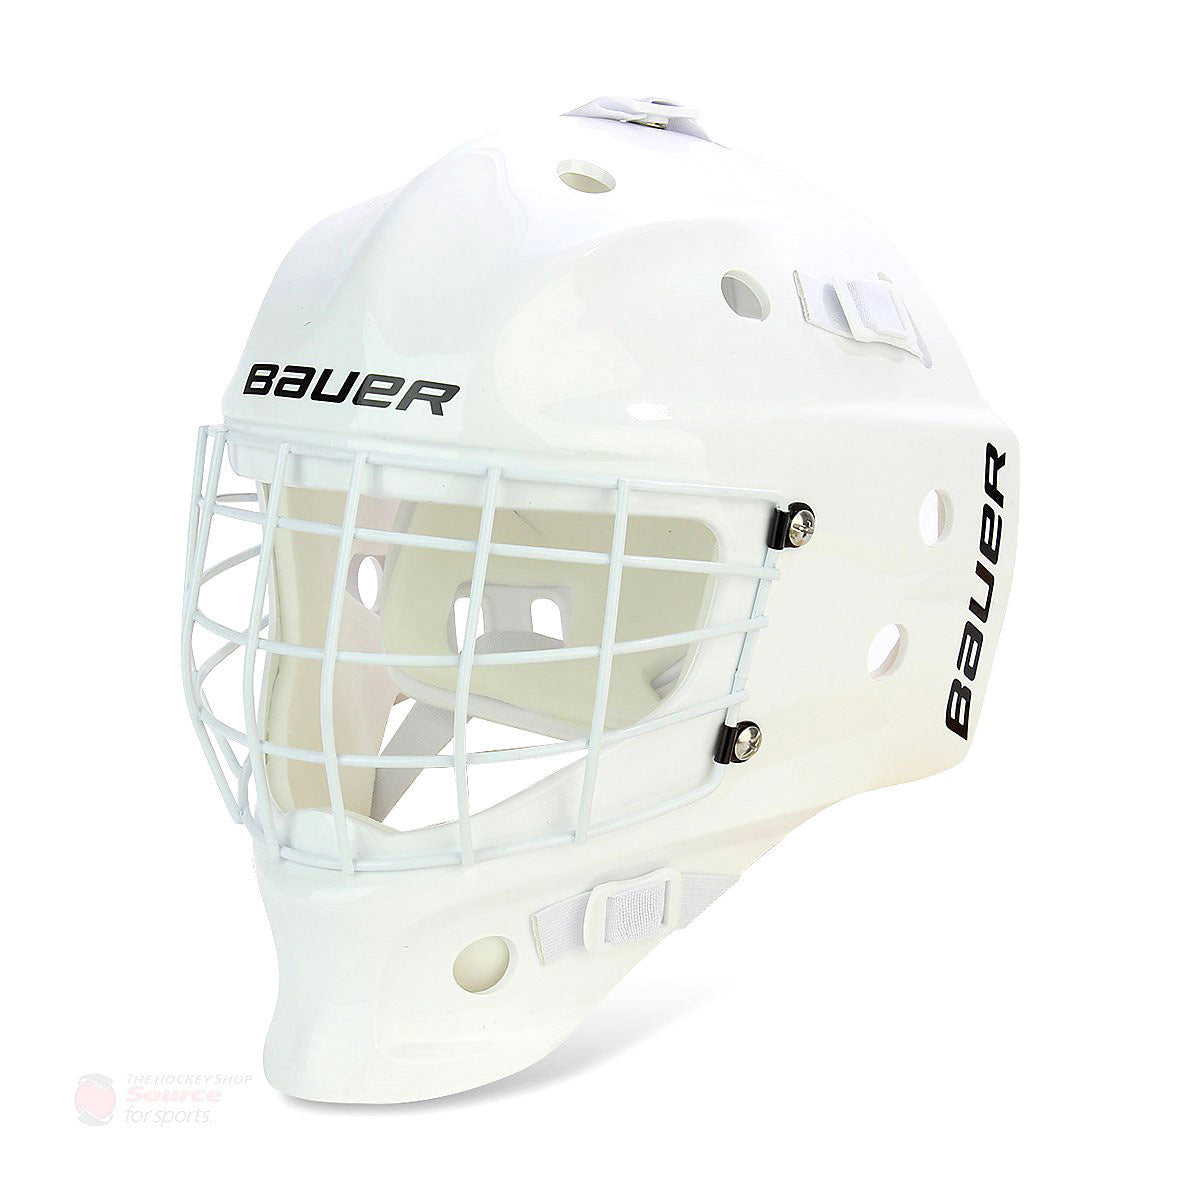 Bauer NME Youth Street Hockey Goalie Mask